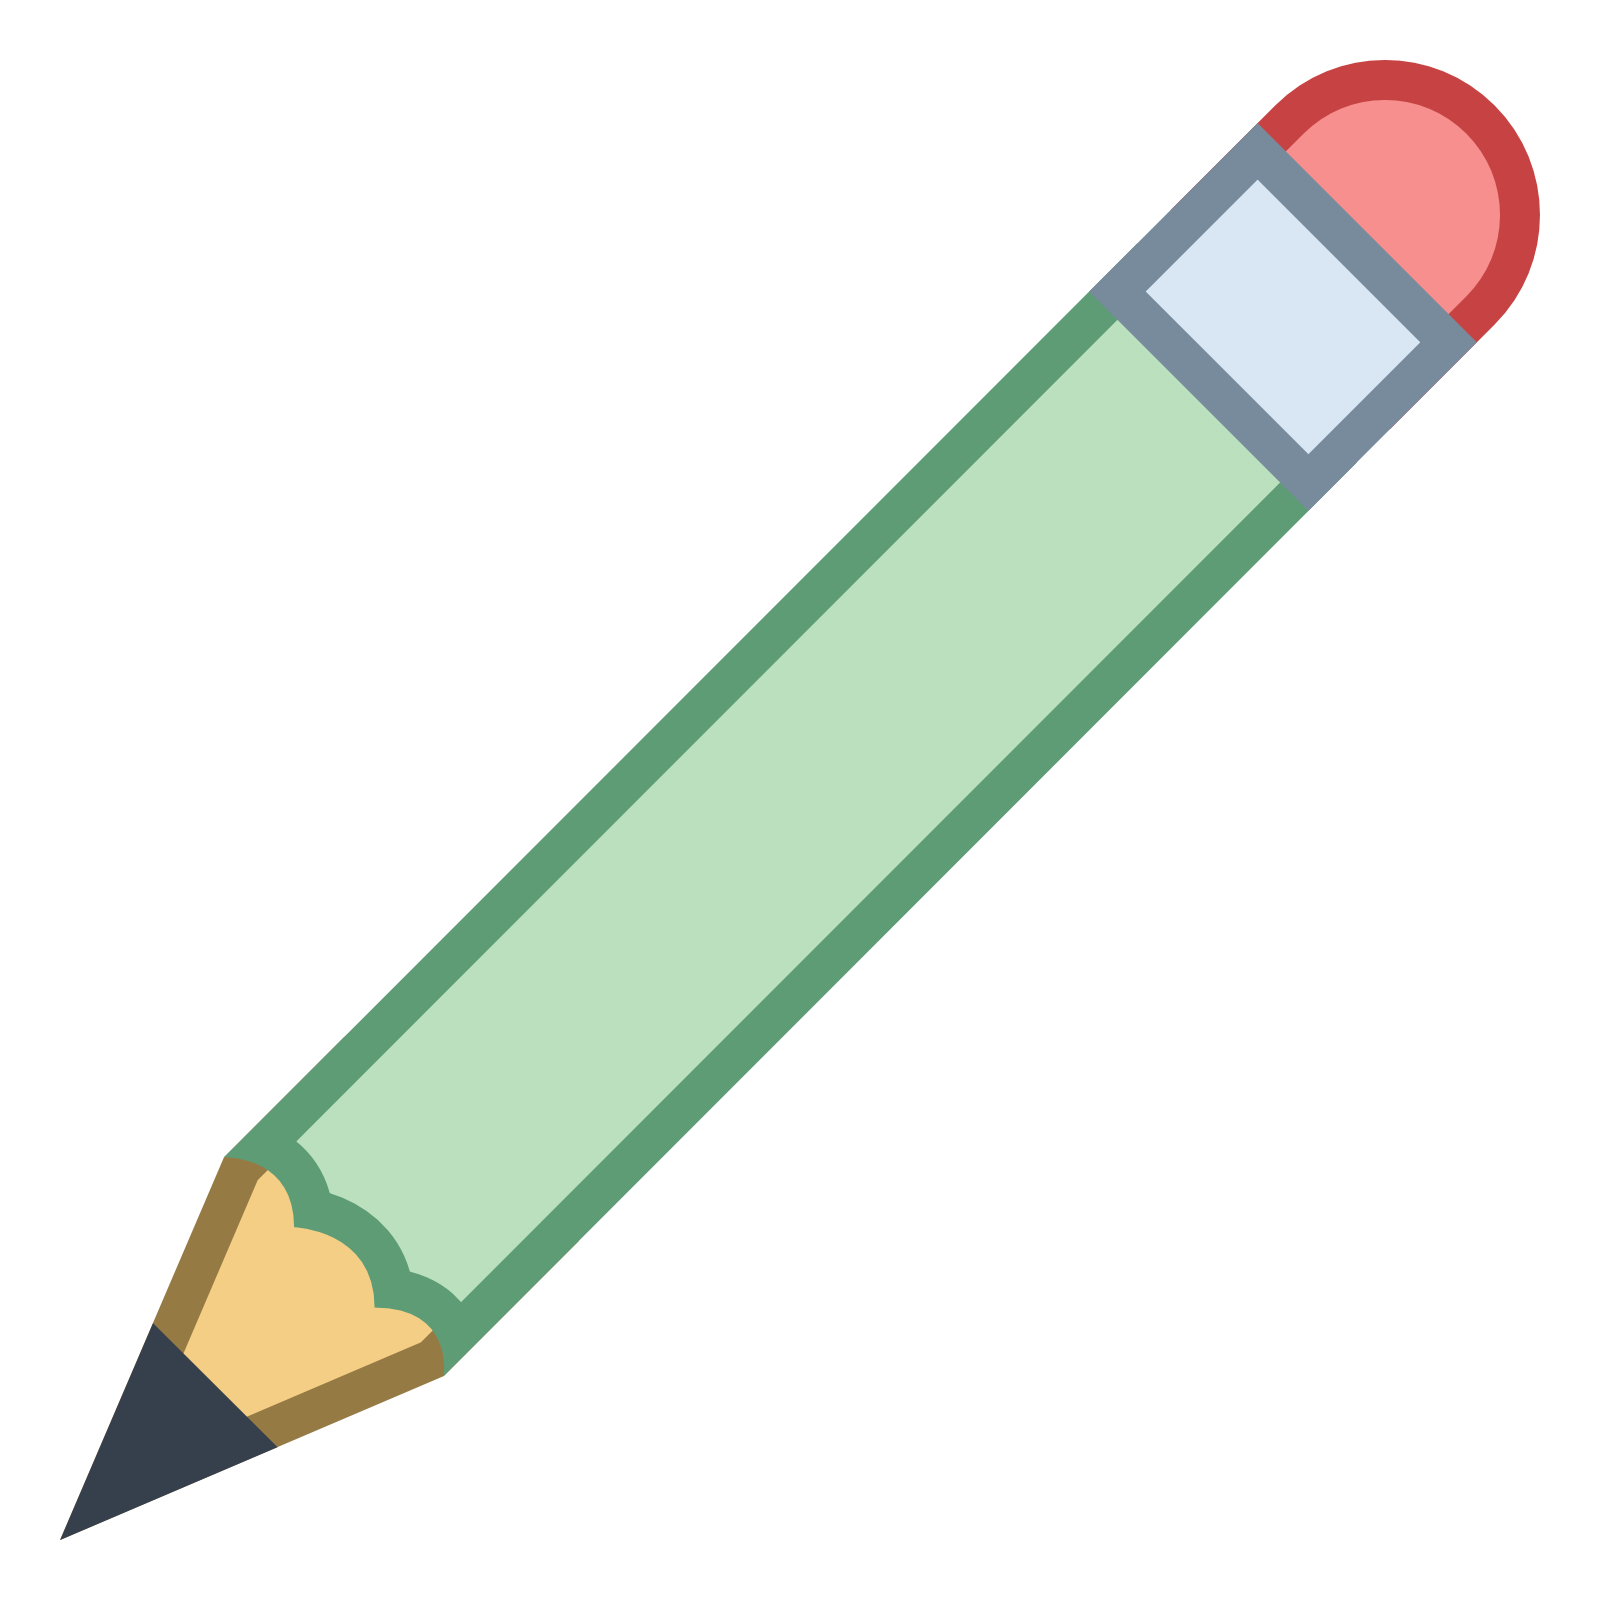 Pencil clipart four At Pencil icon Icon Icons8